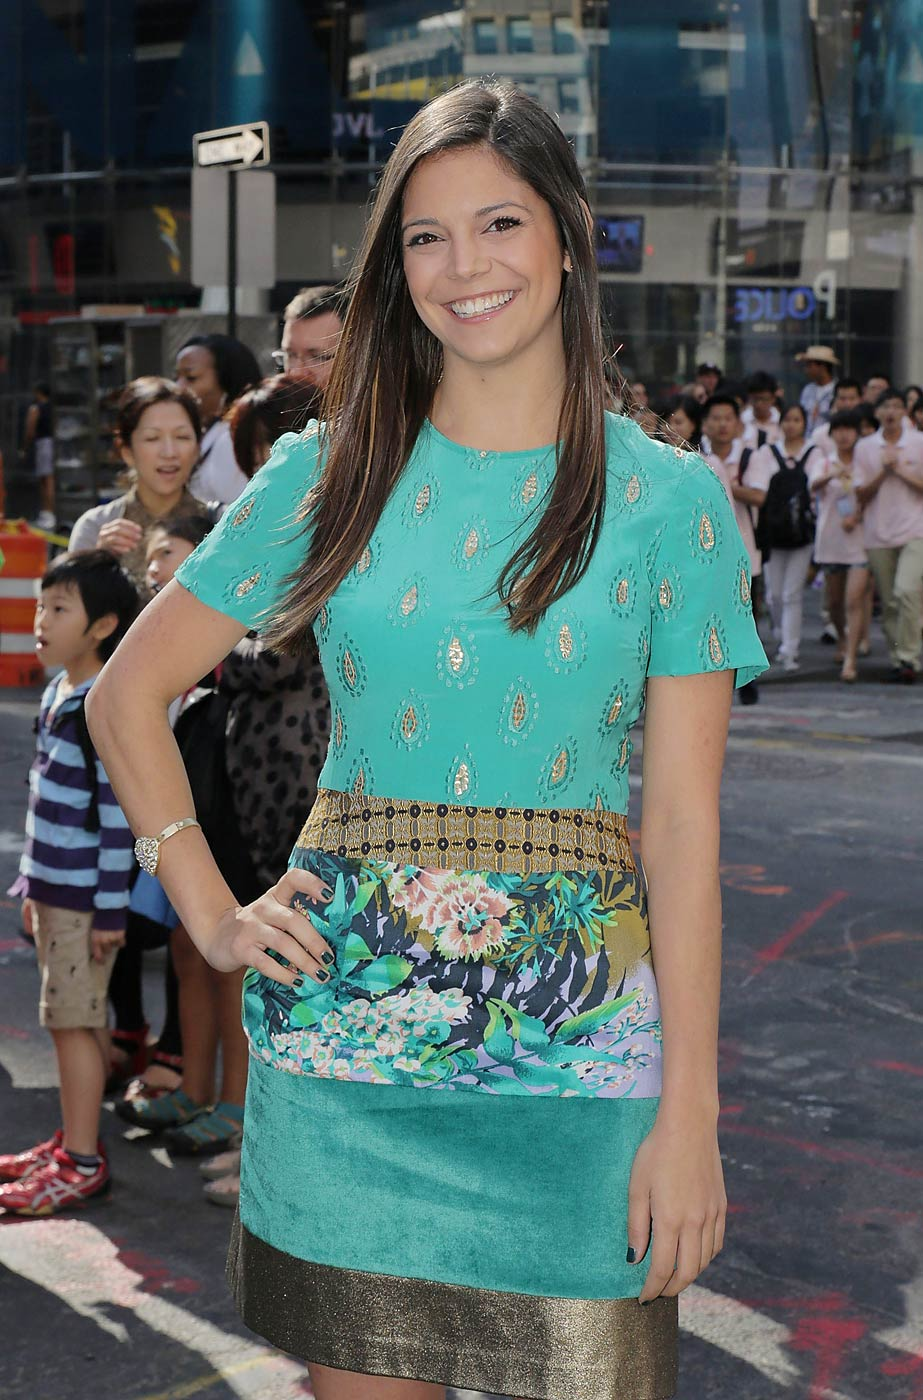 Katie Nolan of Fox Sports poses for a picture after ringing the opening bell at the NASDAQ MarketSite on August 16, 2013 in New York City.